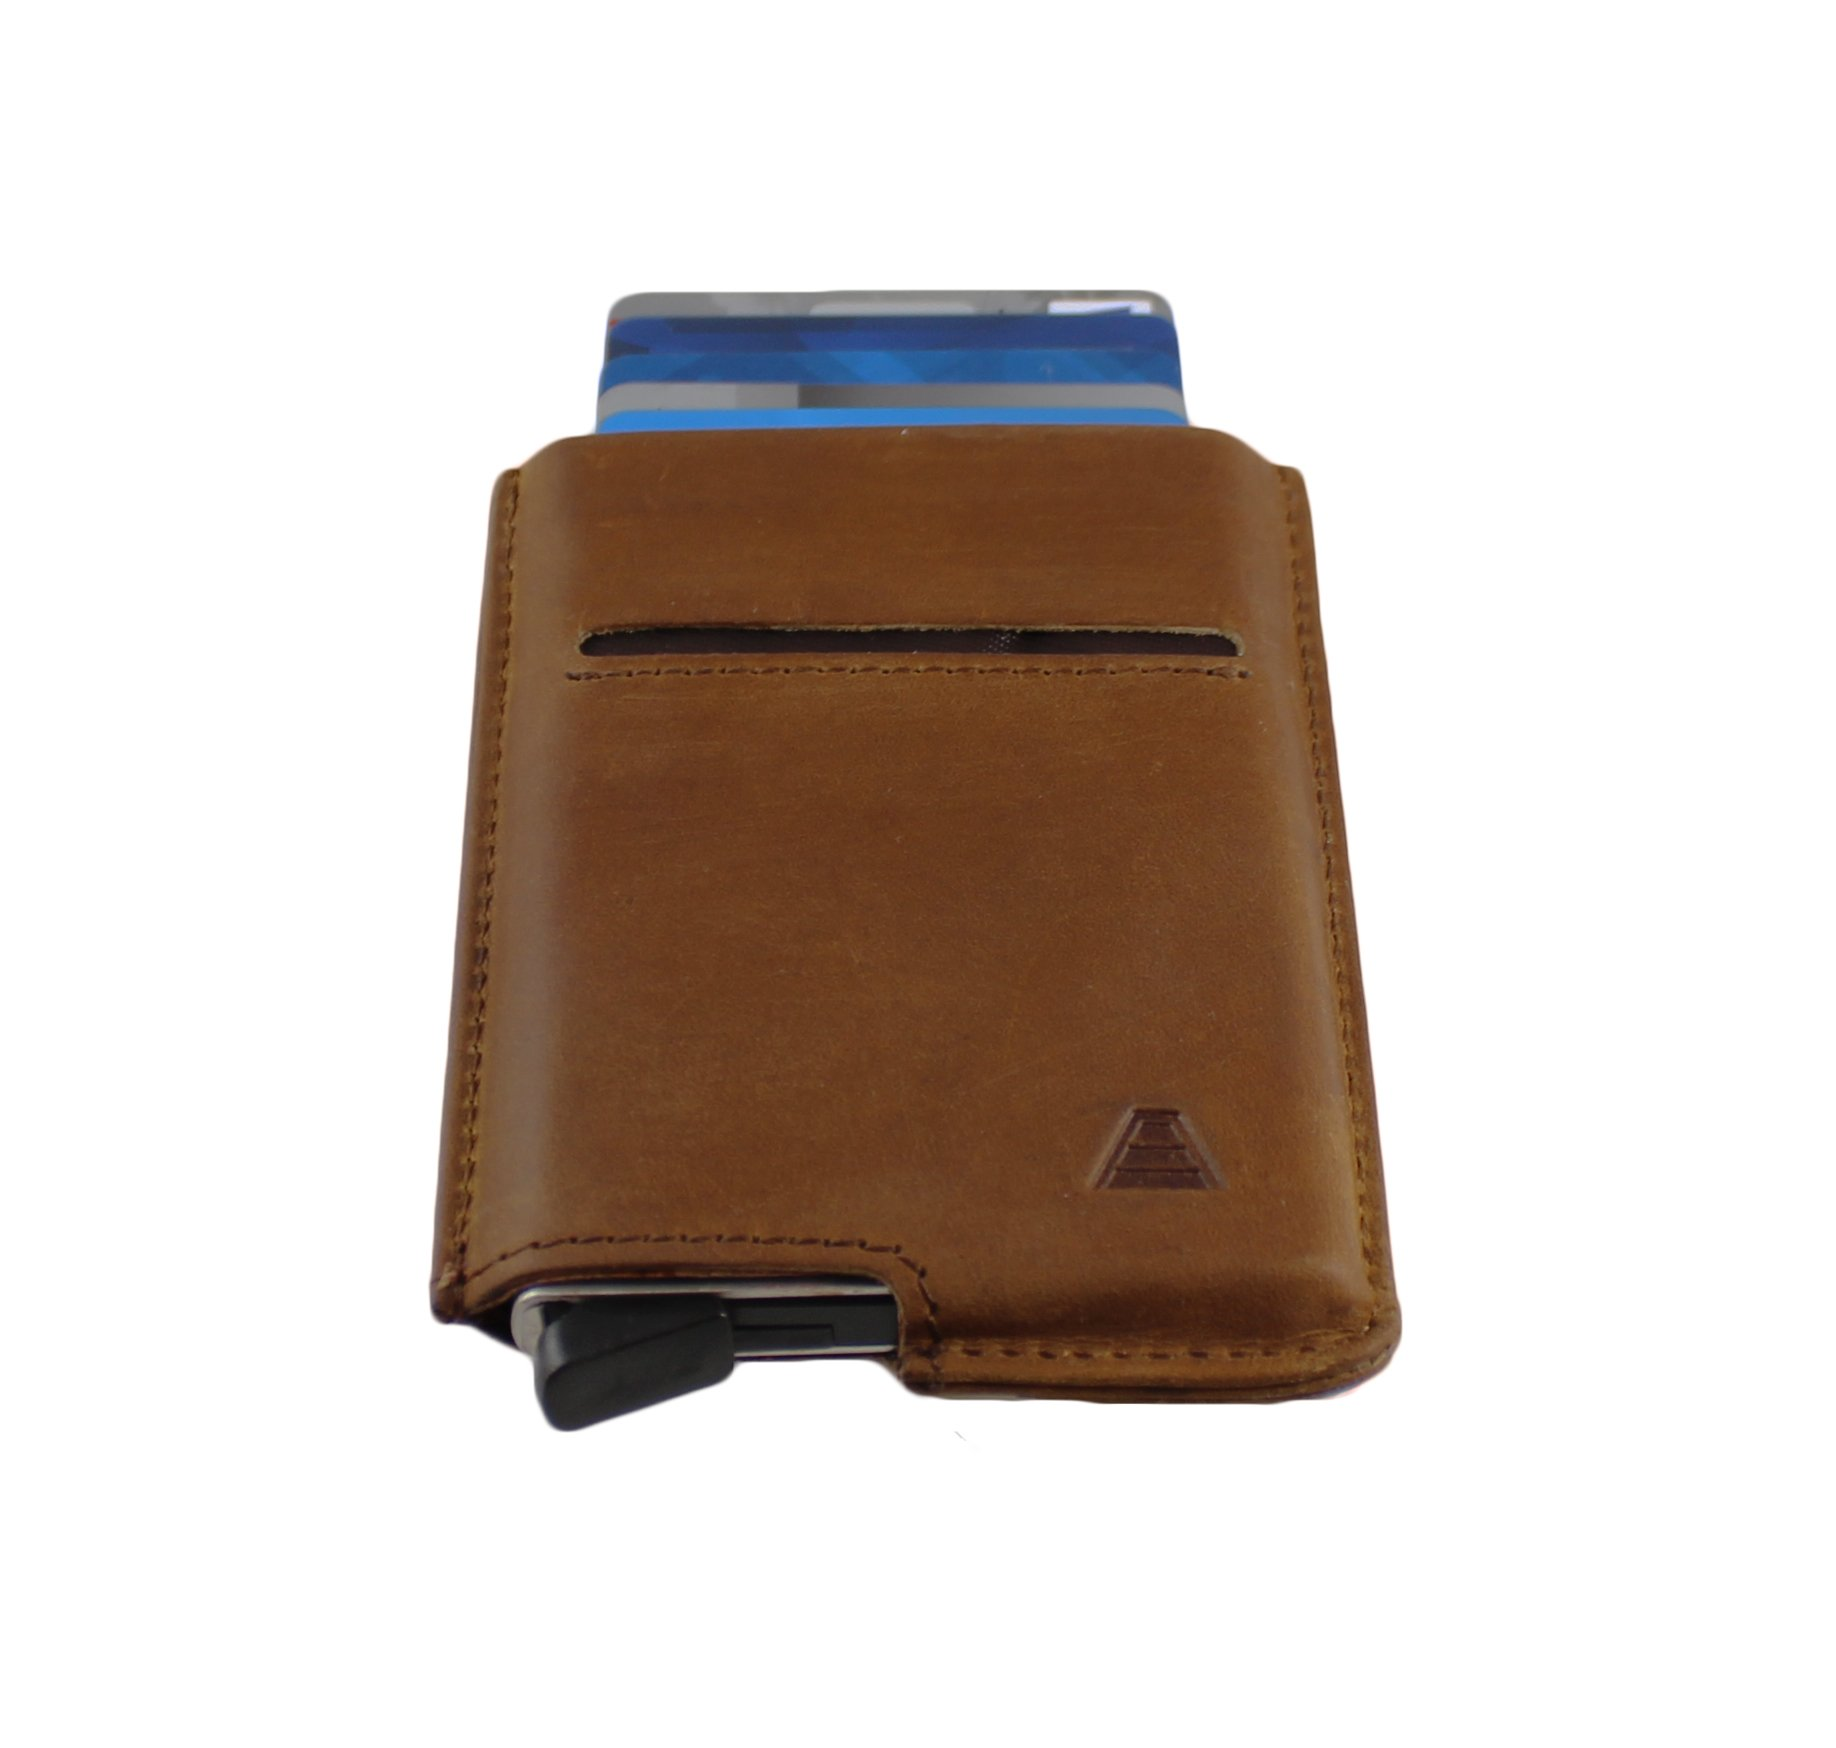 Andar Slim RFID Minimalist Card Case Full Grain Leather Wrapped - The Pilot (Saddle Brown) by Andar (Image #3)